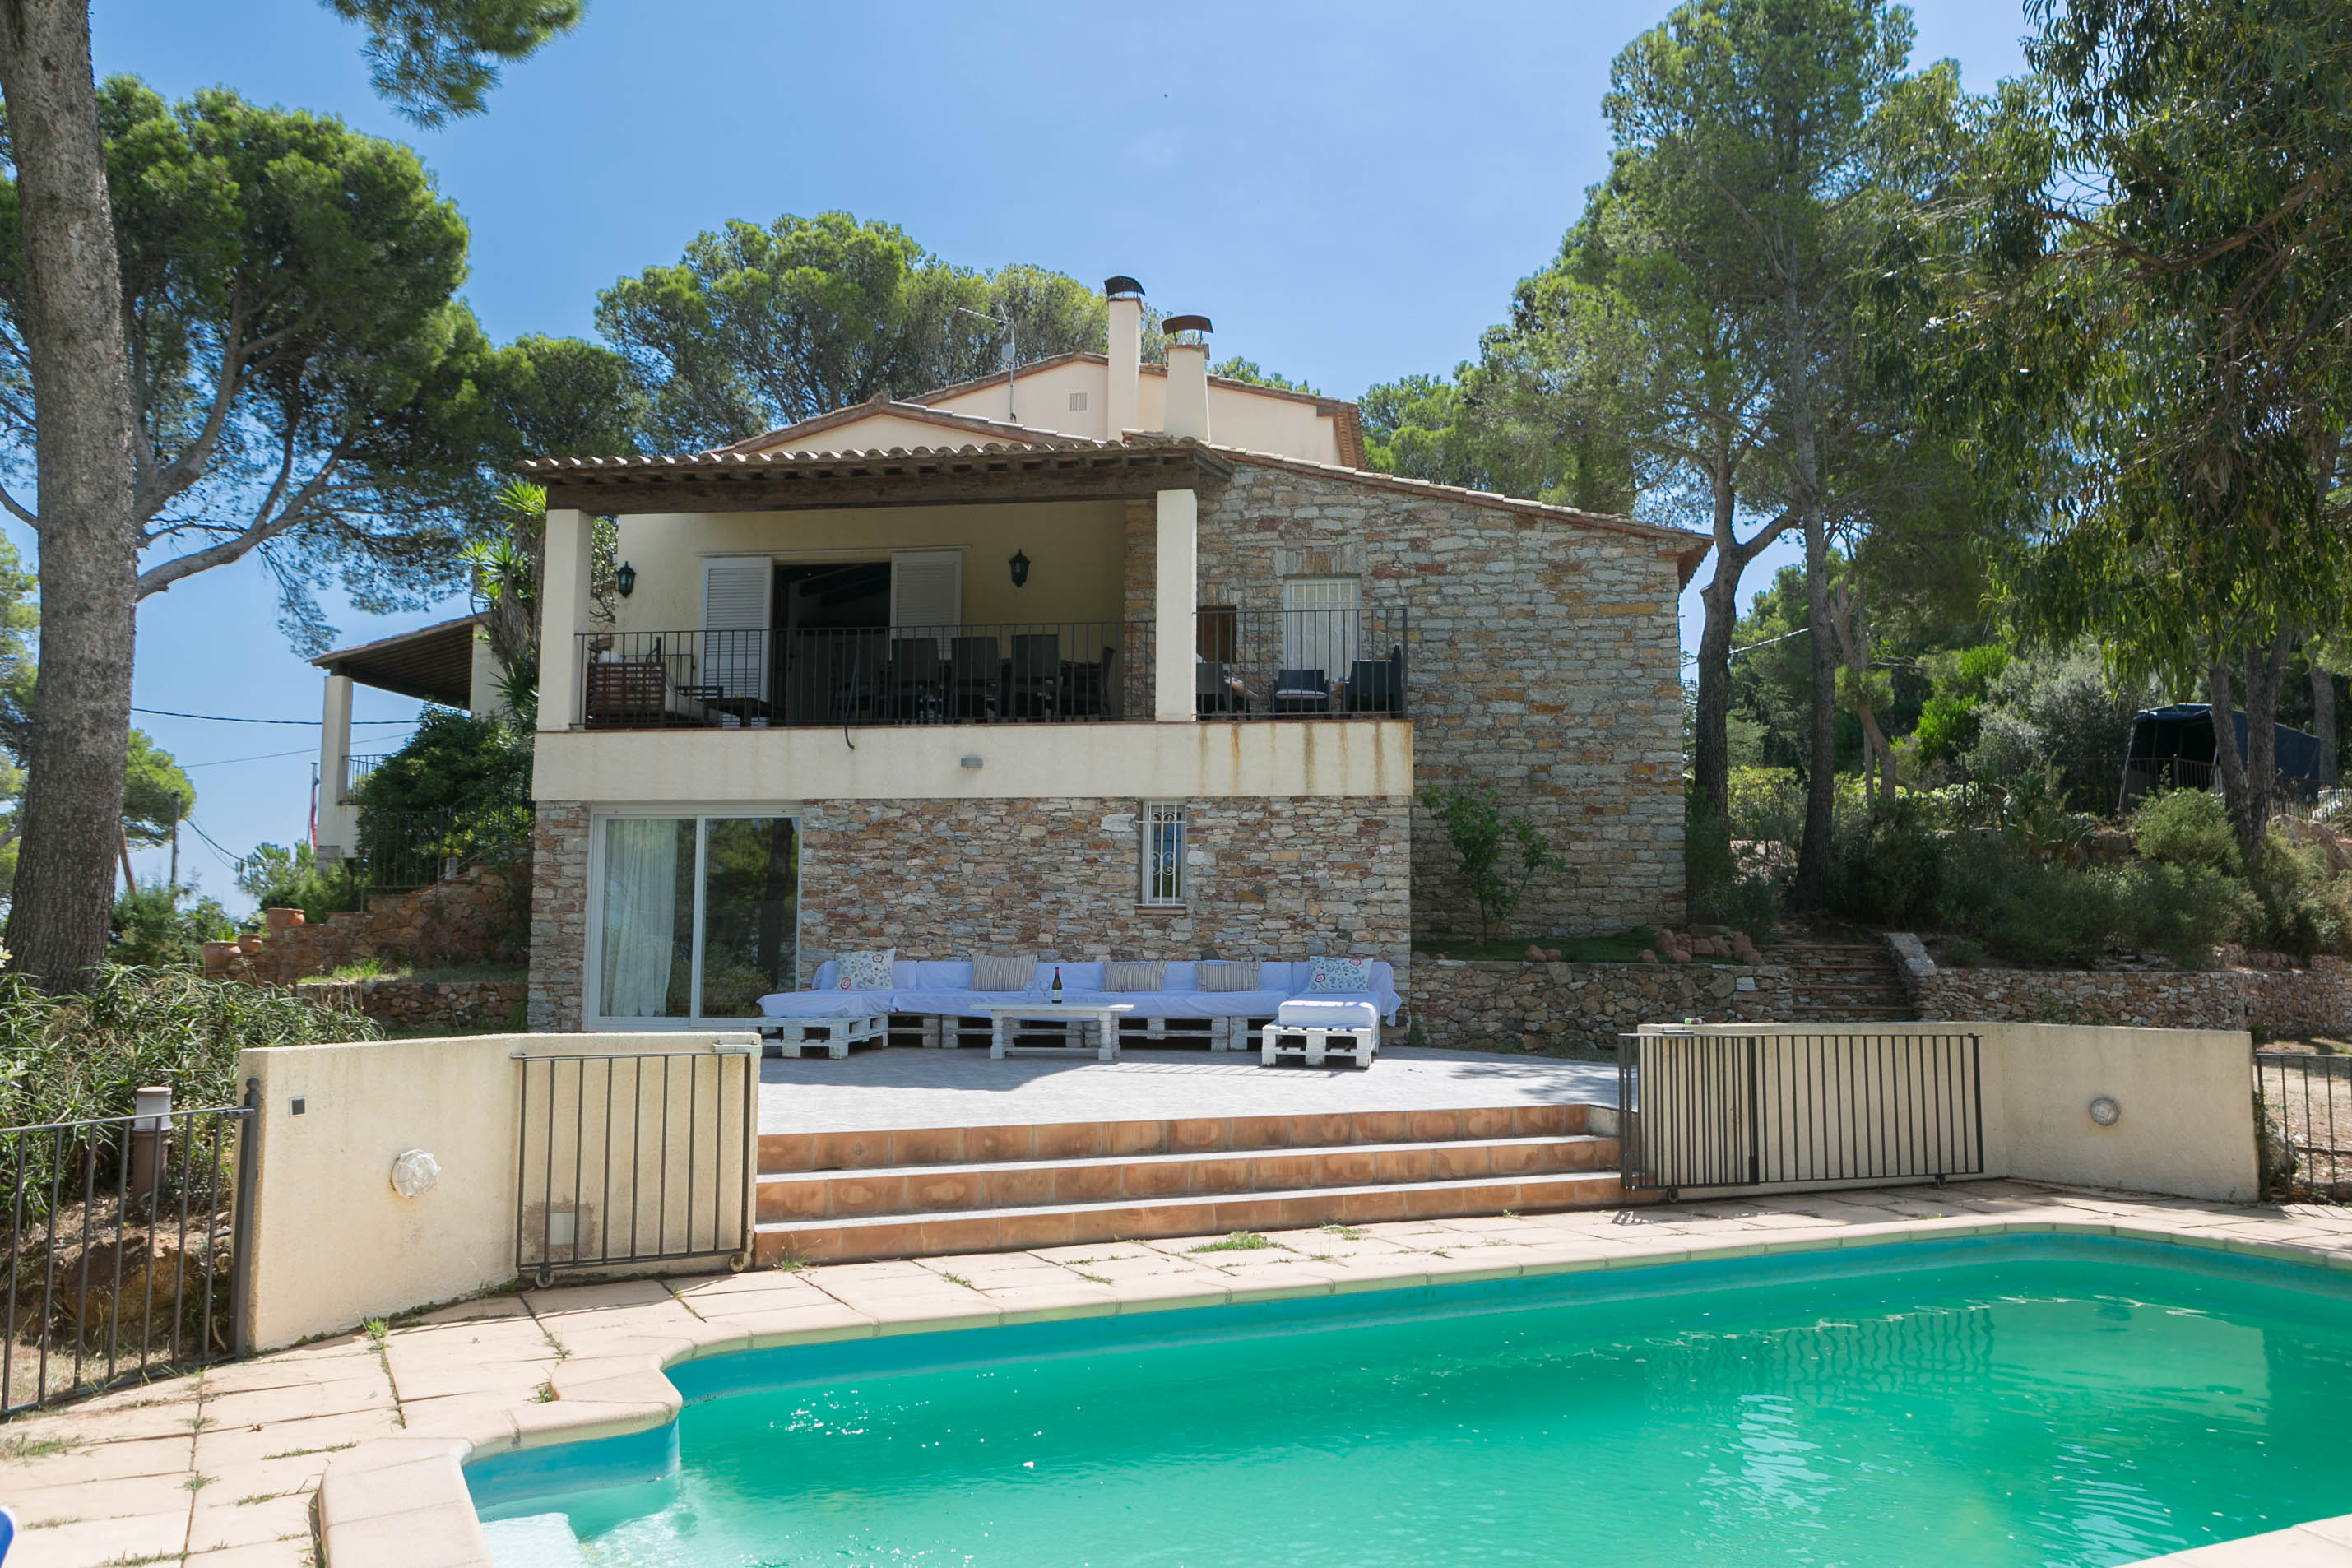 6 bedroom villa in Begur sea views close to the beach and  (Ref:H40) 1